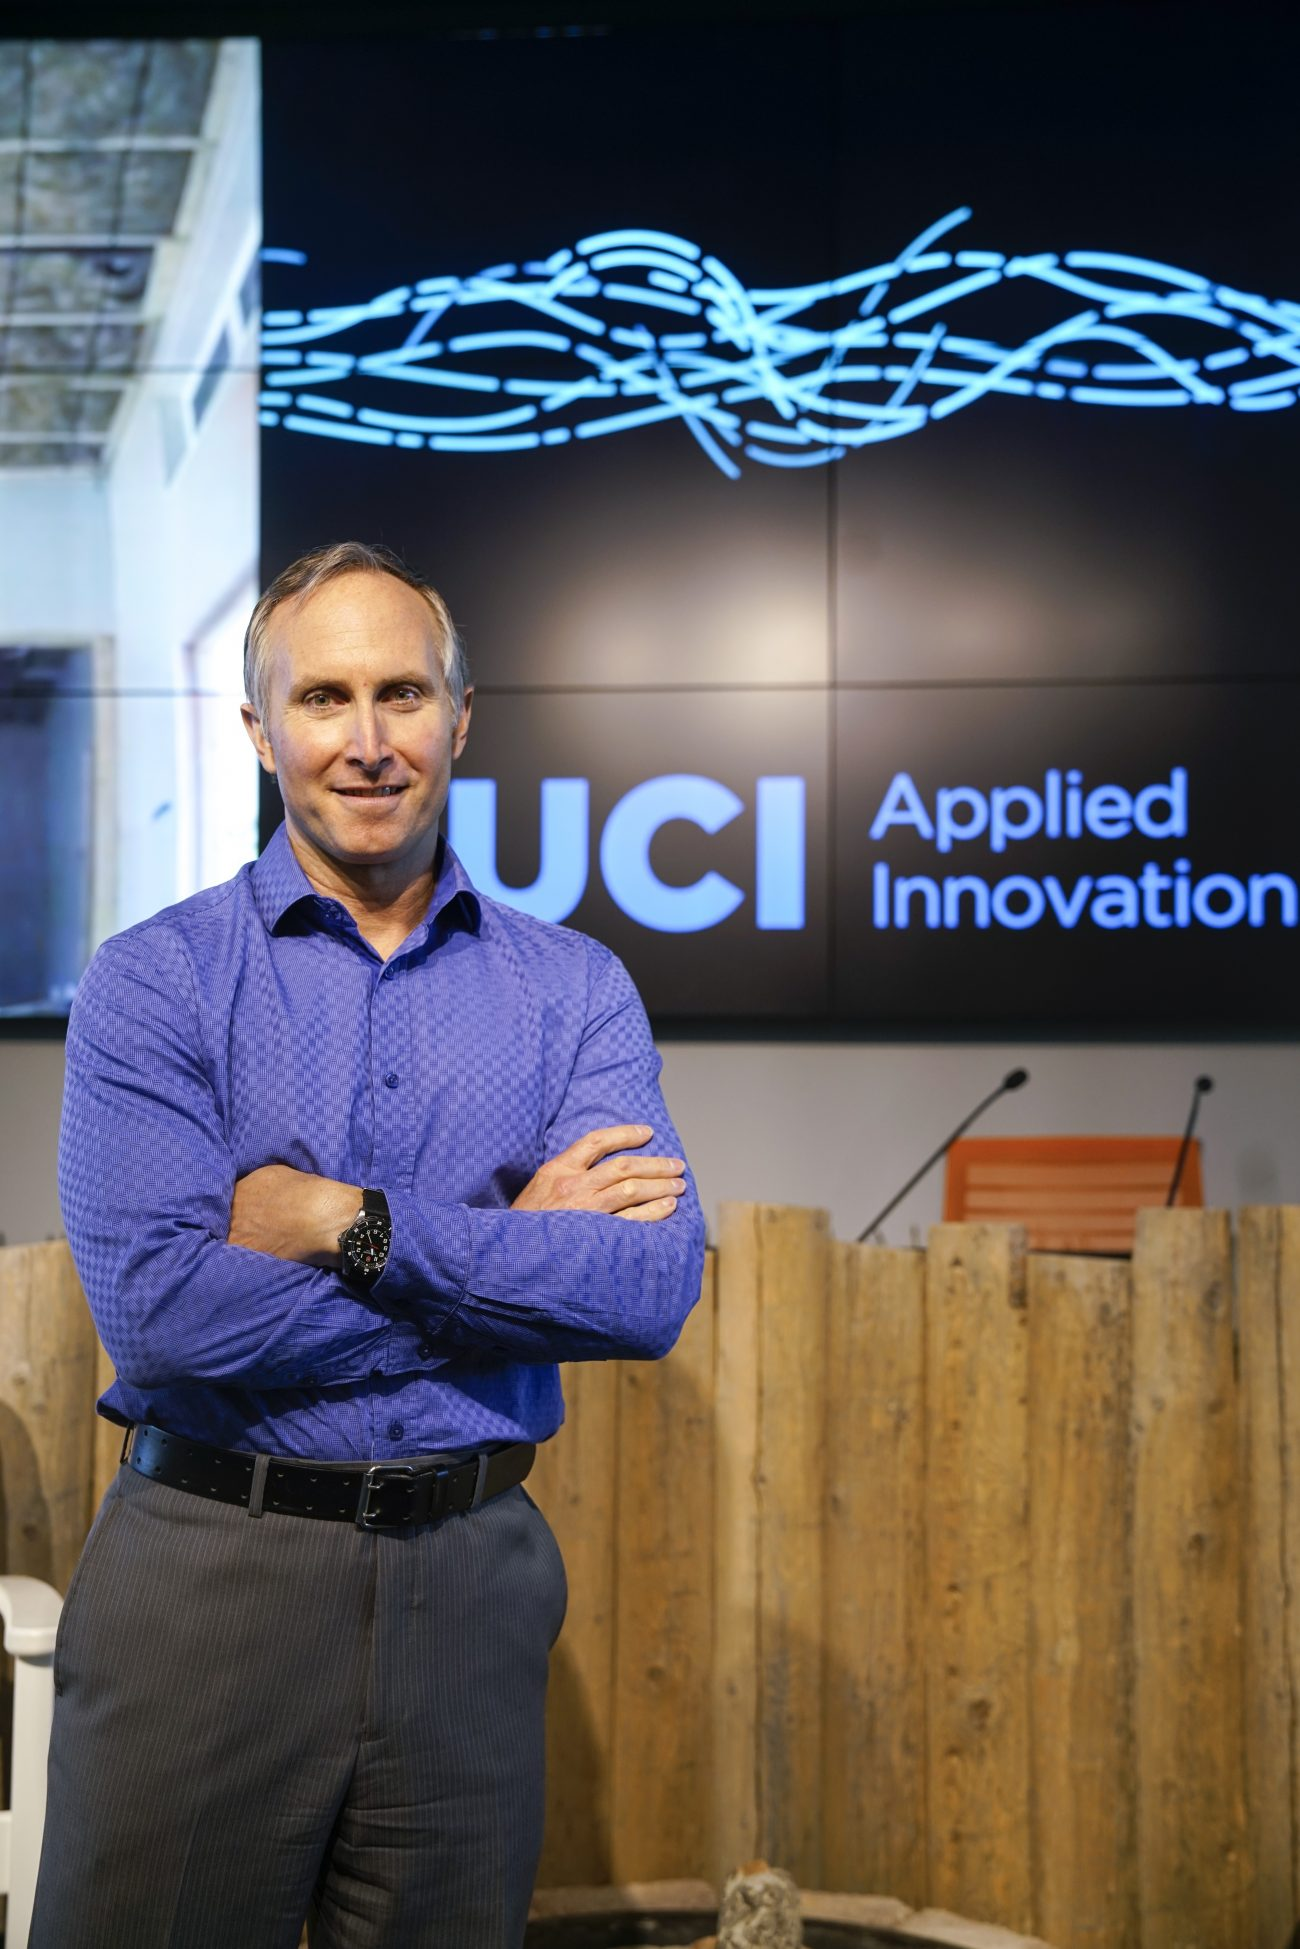 Michael Artinger Joins UCI Applied Innovation to Manage Research Translation Group